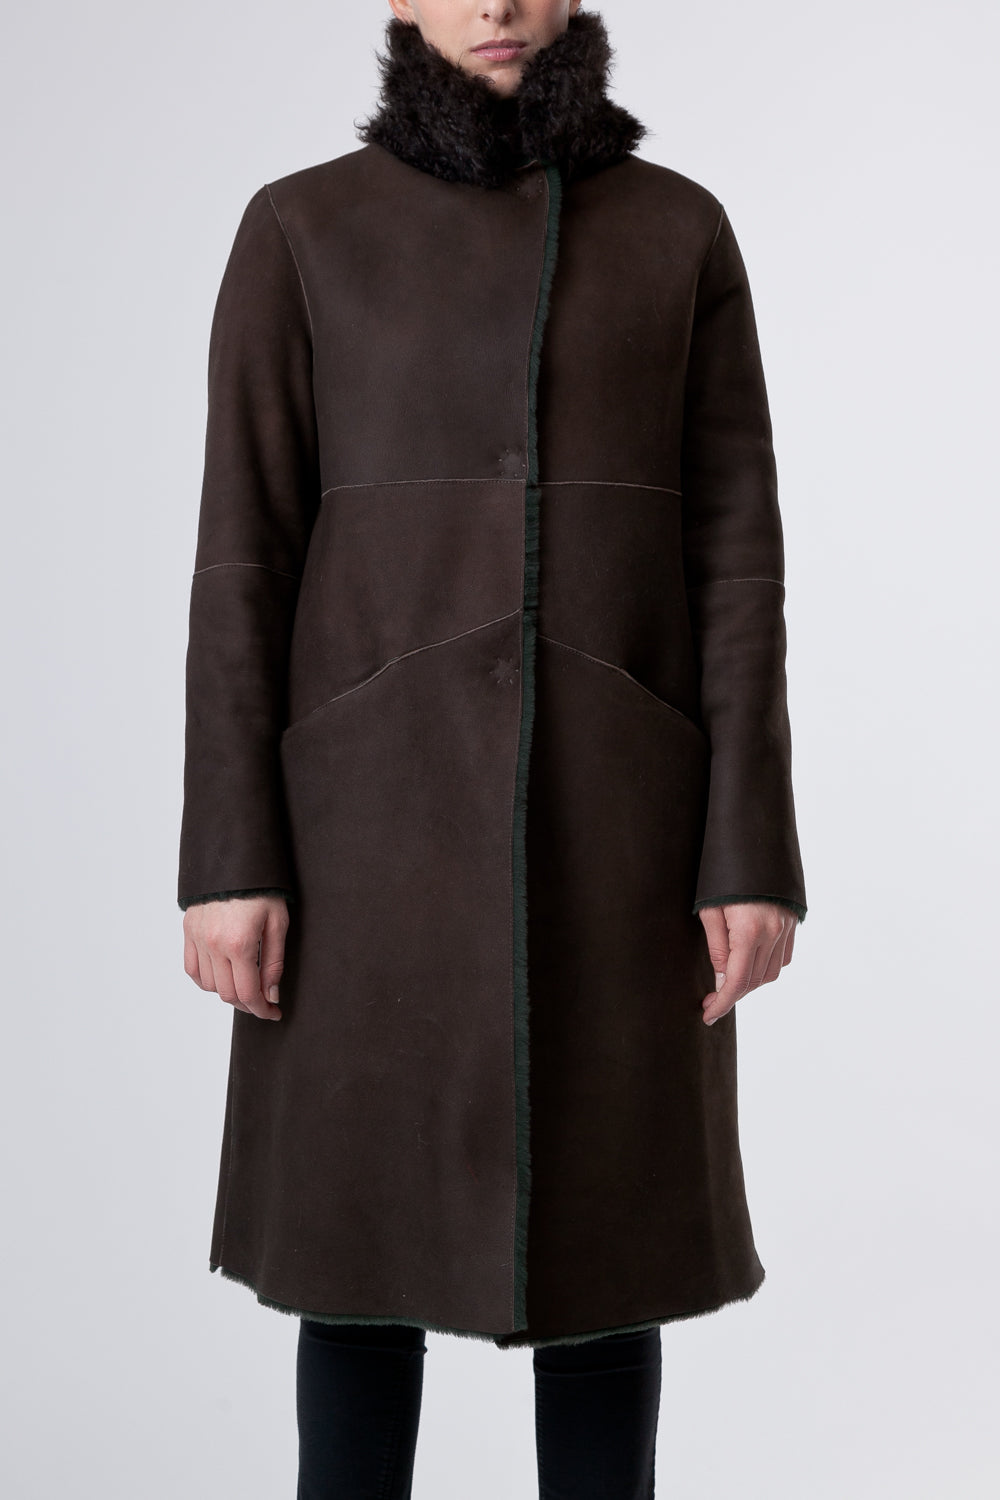 Il Cappotto Brown - Brown Coat Wears